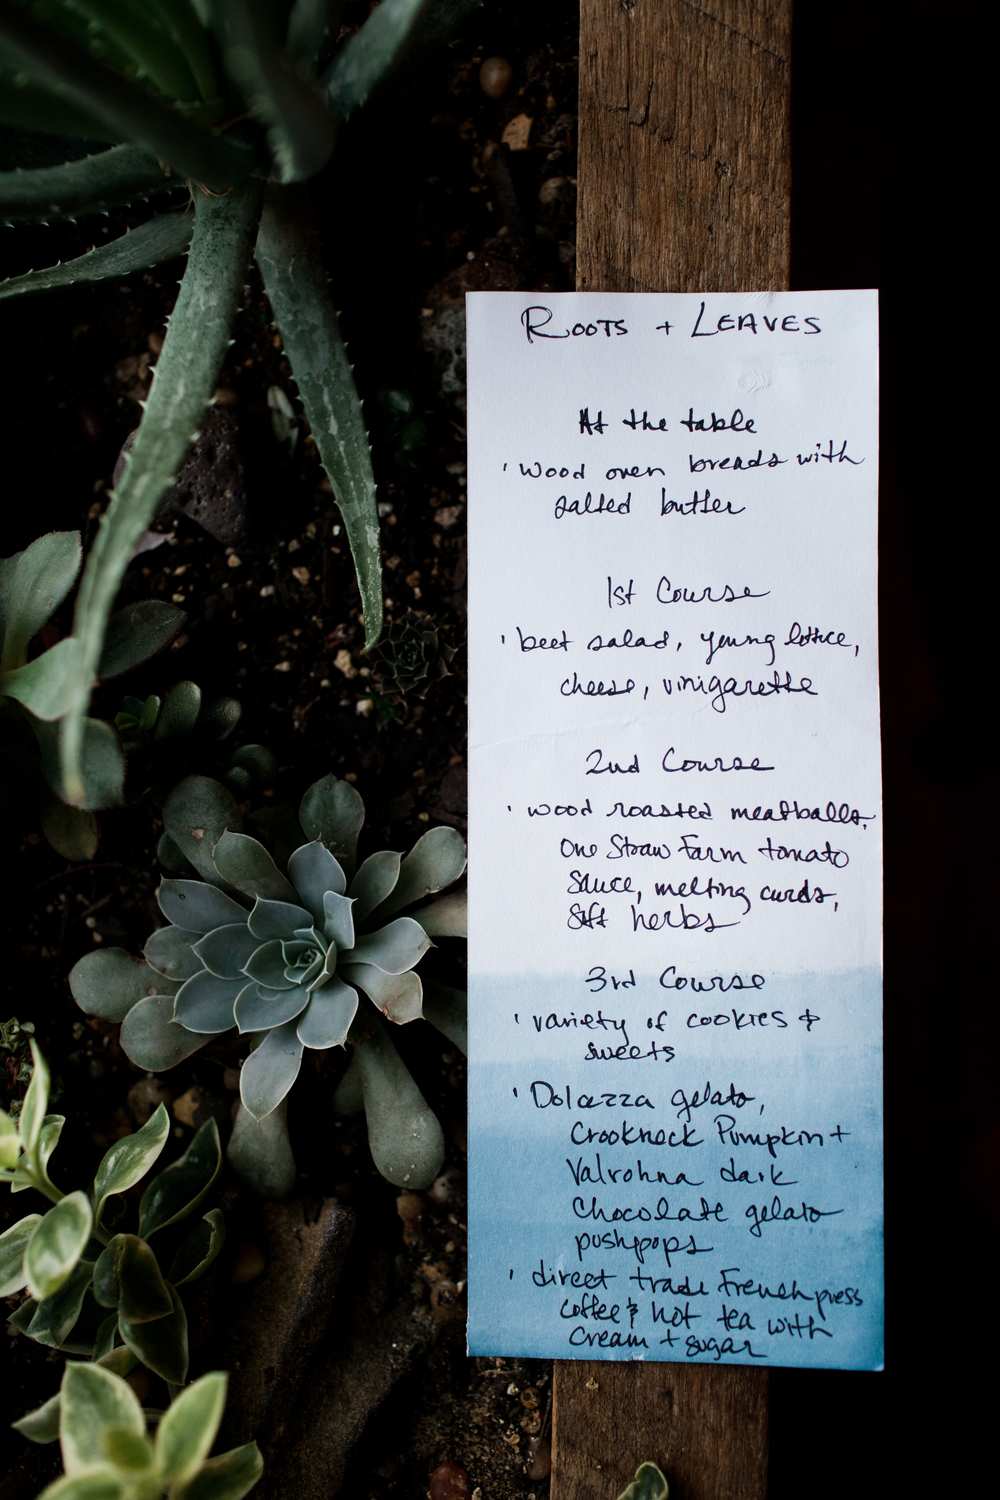 Had so much fun hand-dyeing the menus with organic indigo